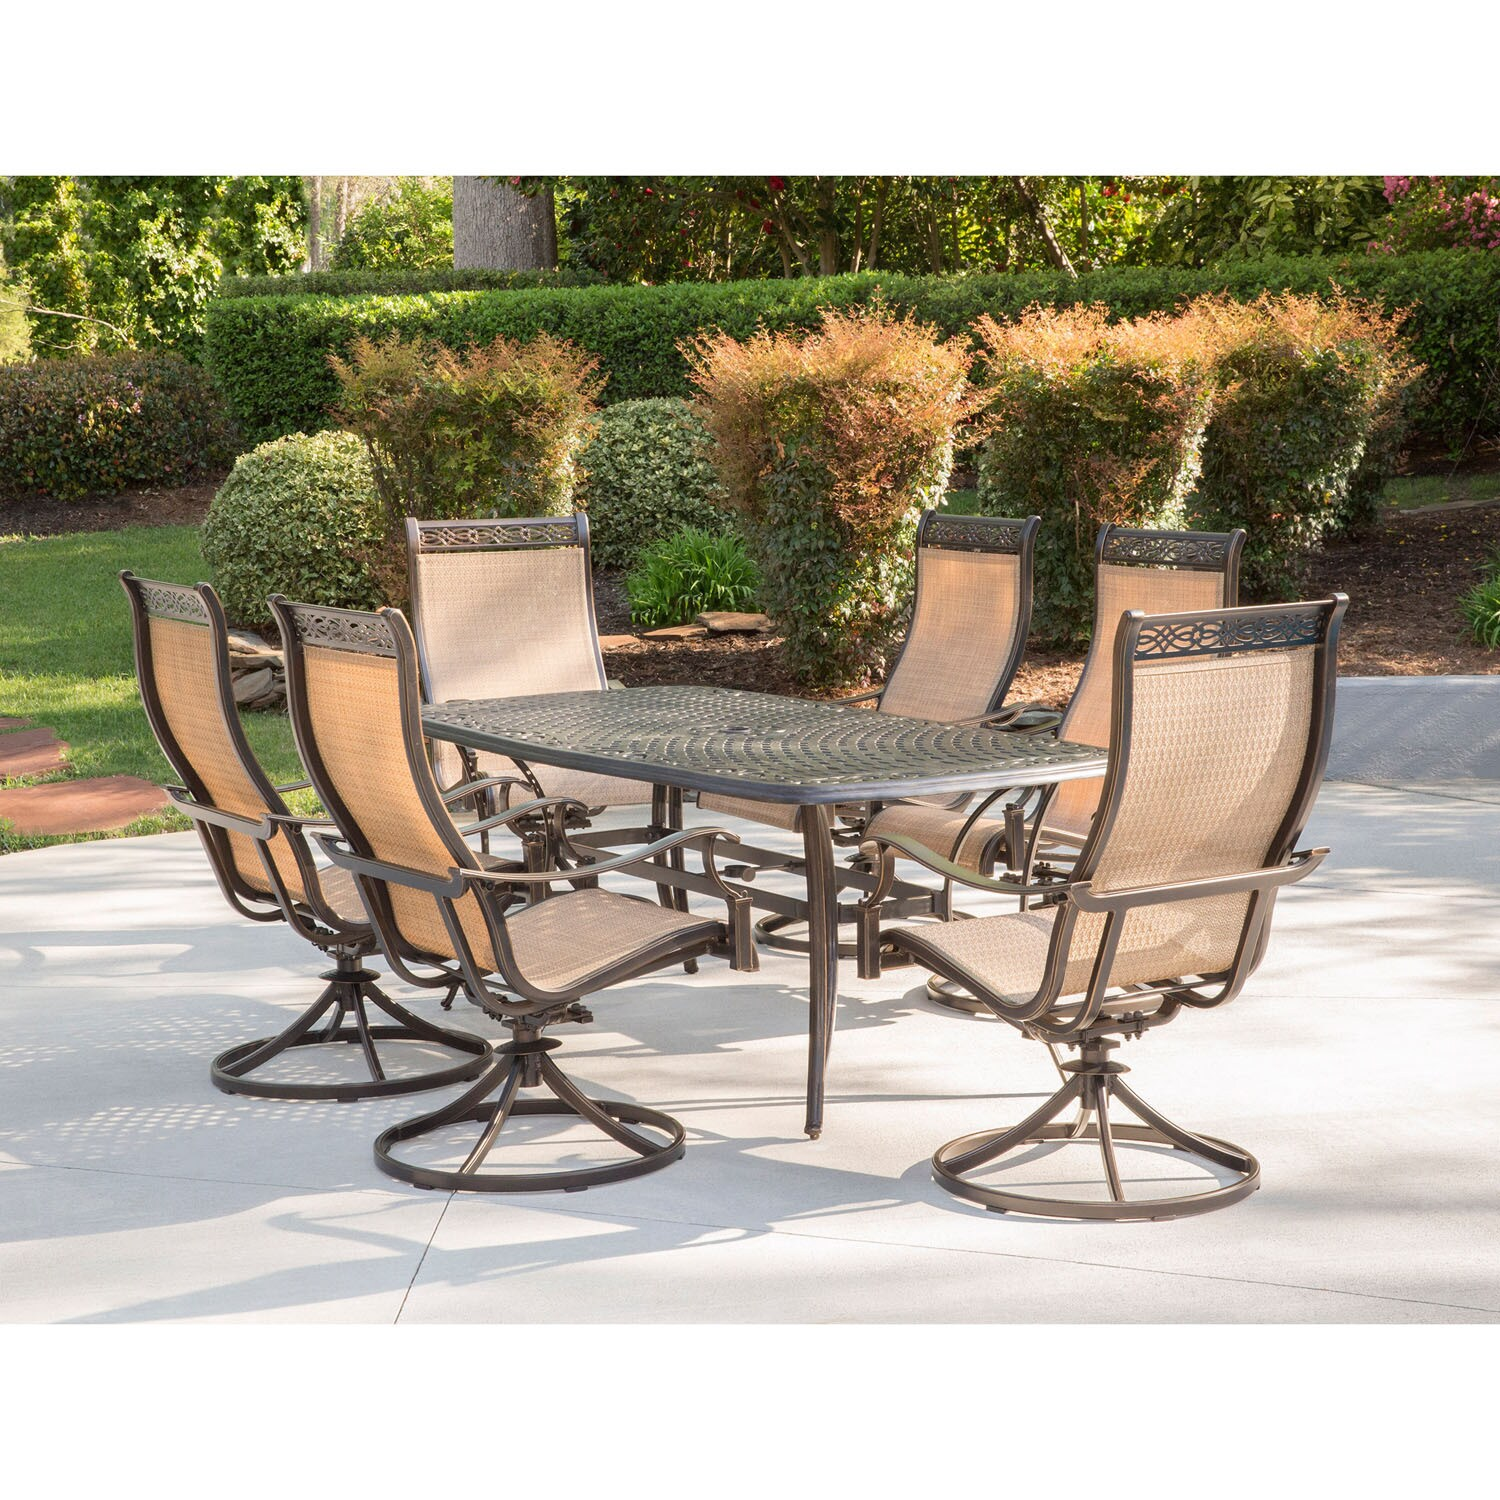 Shop Hanover Manor Tan Aluminum 7 Piece Outdoor Dining Set With 6 Swivel Rockers And A Large Cast Top Dining Table Overstock 15964197